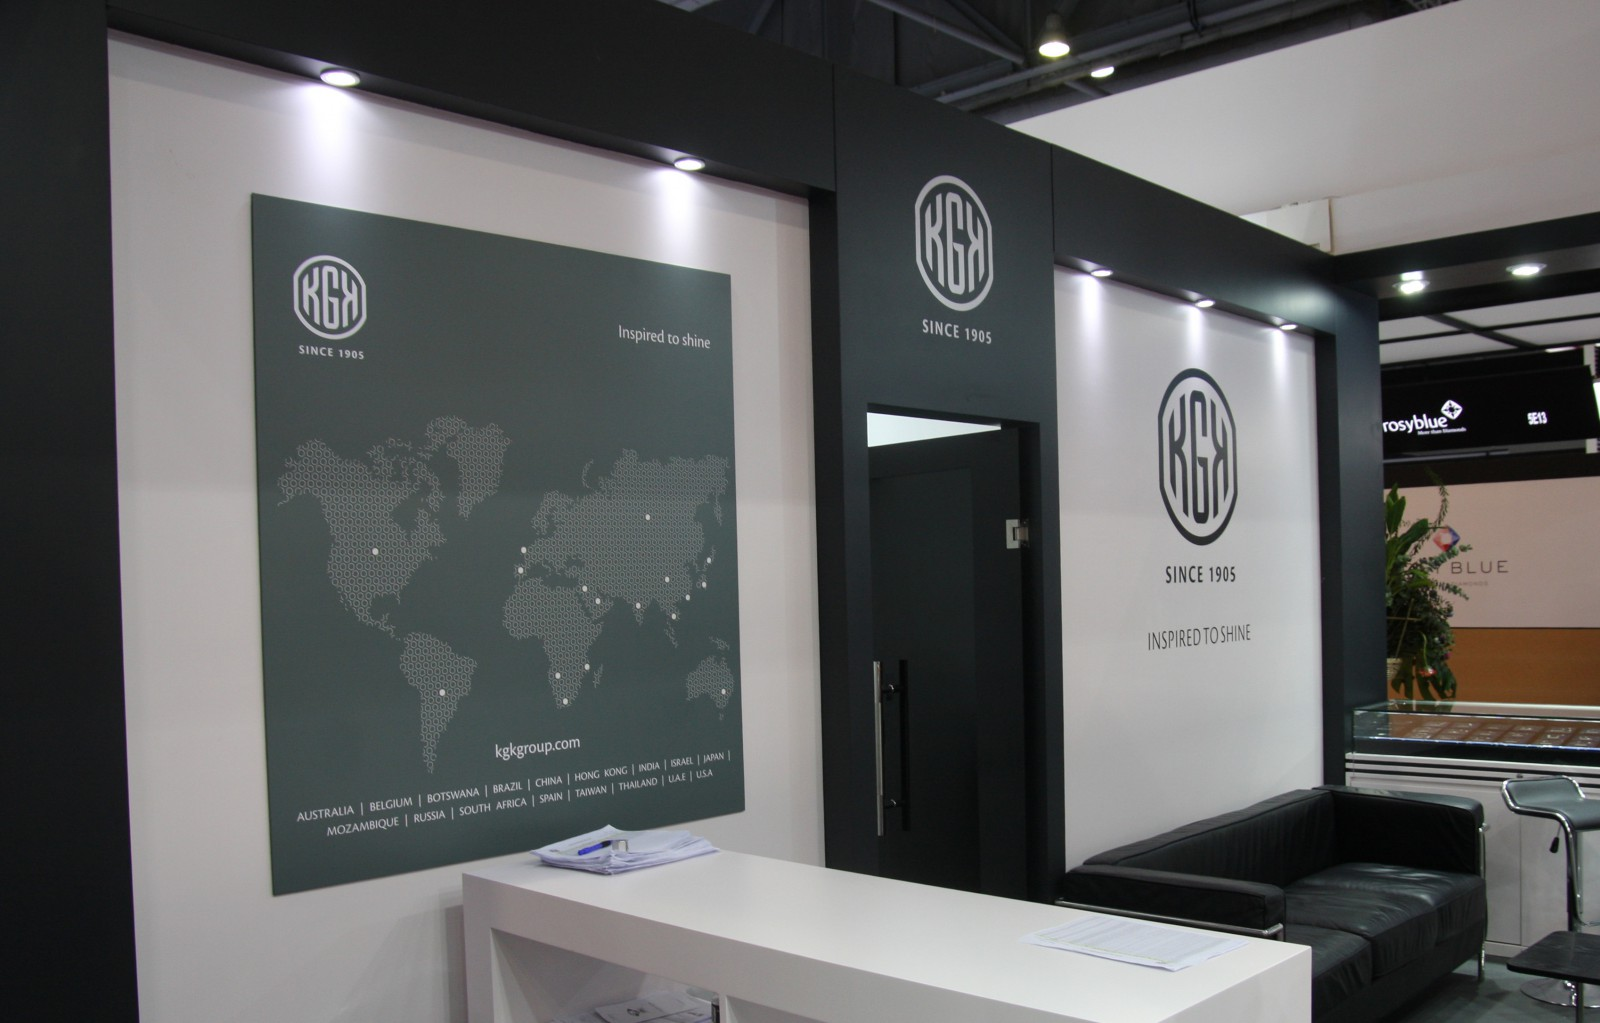 KGK Diamonds booth at Asiaworld - Expo Hong Kong Sep 2016